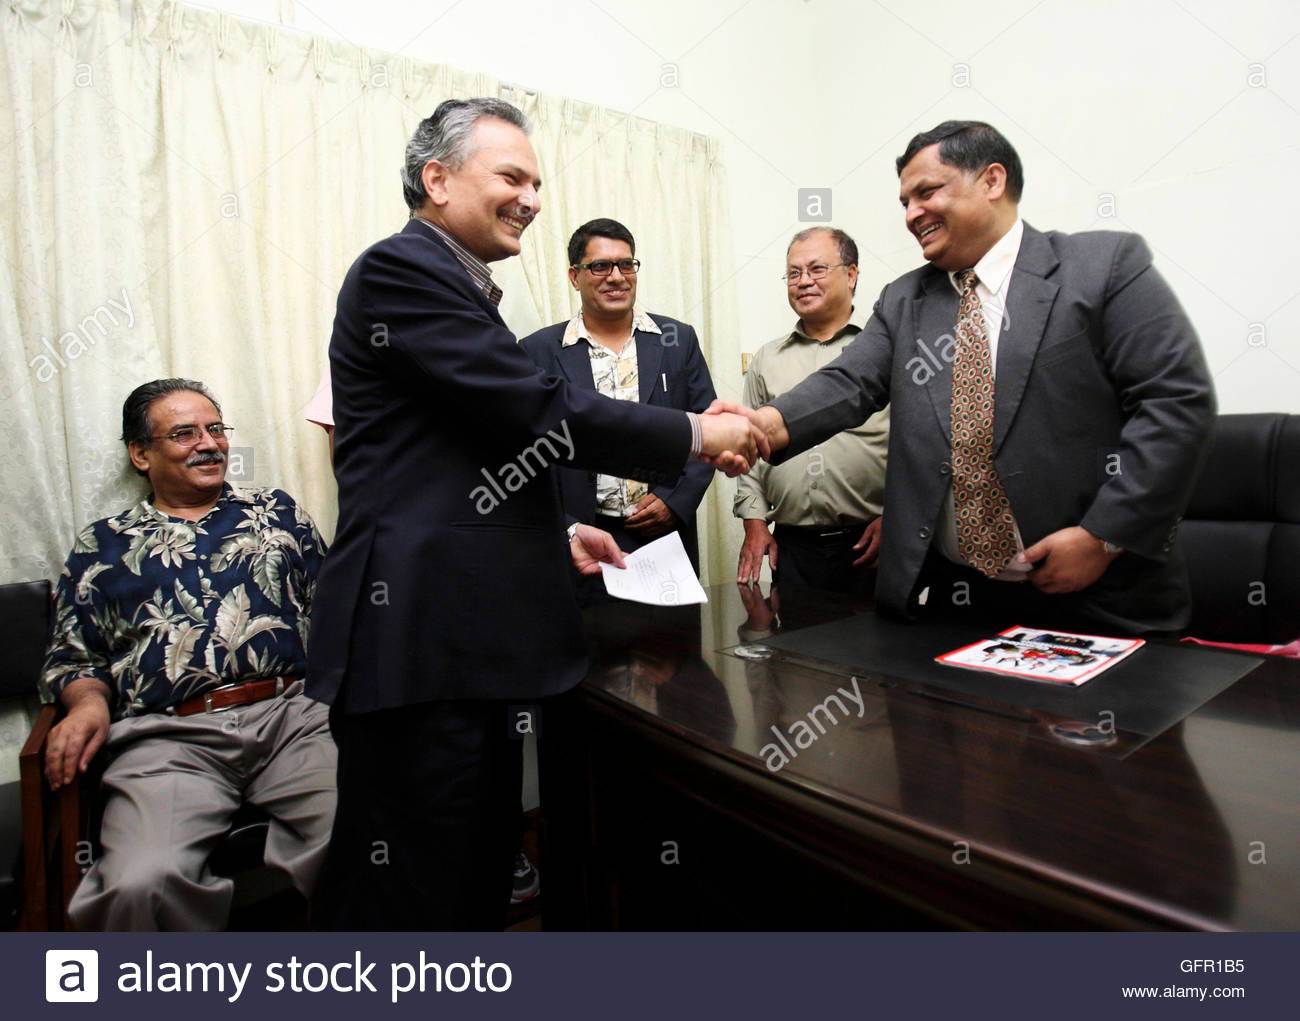 Maoist senior leader Dr. Baburam Bhattarai (L) shakes hand after receiving his nomination paper from Manohar Prasad Bhattarai, Special Secretary of the Nepali Parliament while filing his nomination for the Prime Minister's post in Kathmandu August 26, 2011. Candidates from Communist Party of Nepal (Maoist) and Nepali Congress has filed their nominations for Nepal Prime Minister's post on Friday for the election to be held on Sunday. REUTERS/Navesh Chitrakar (NEPAL - Tags: POLITICS ELECTIONS)